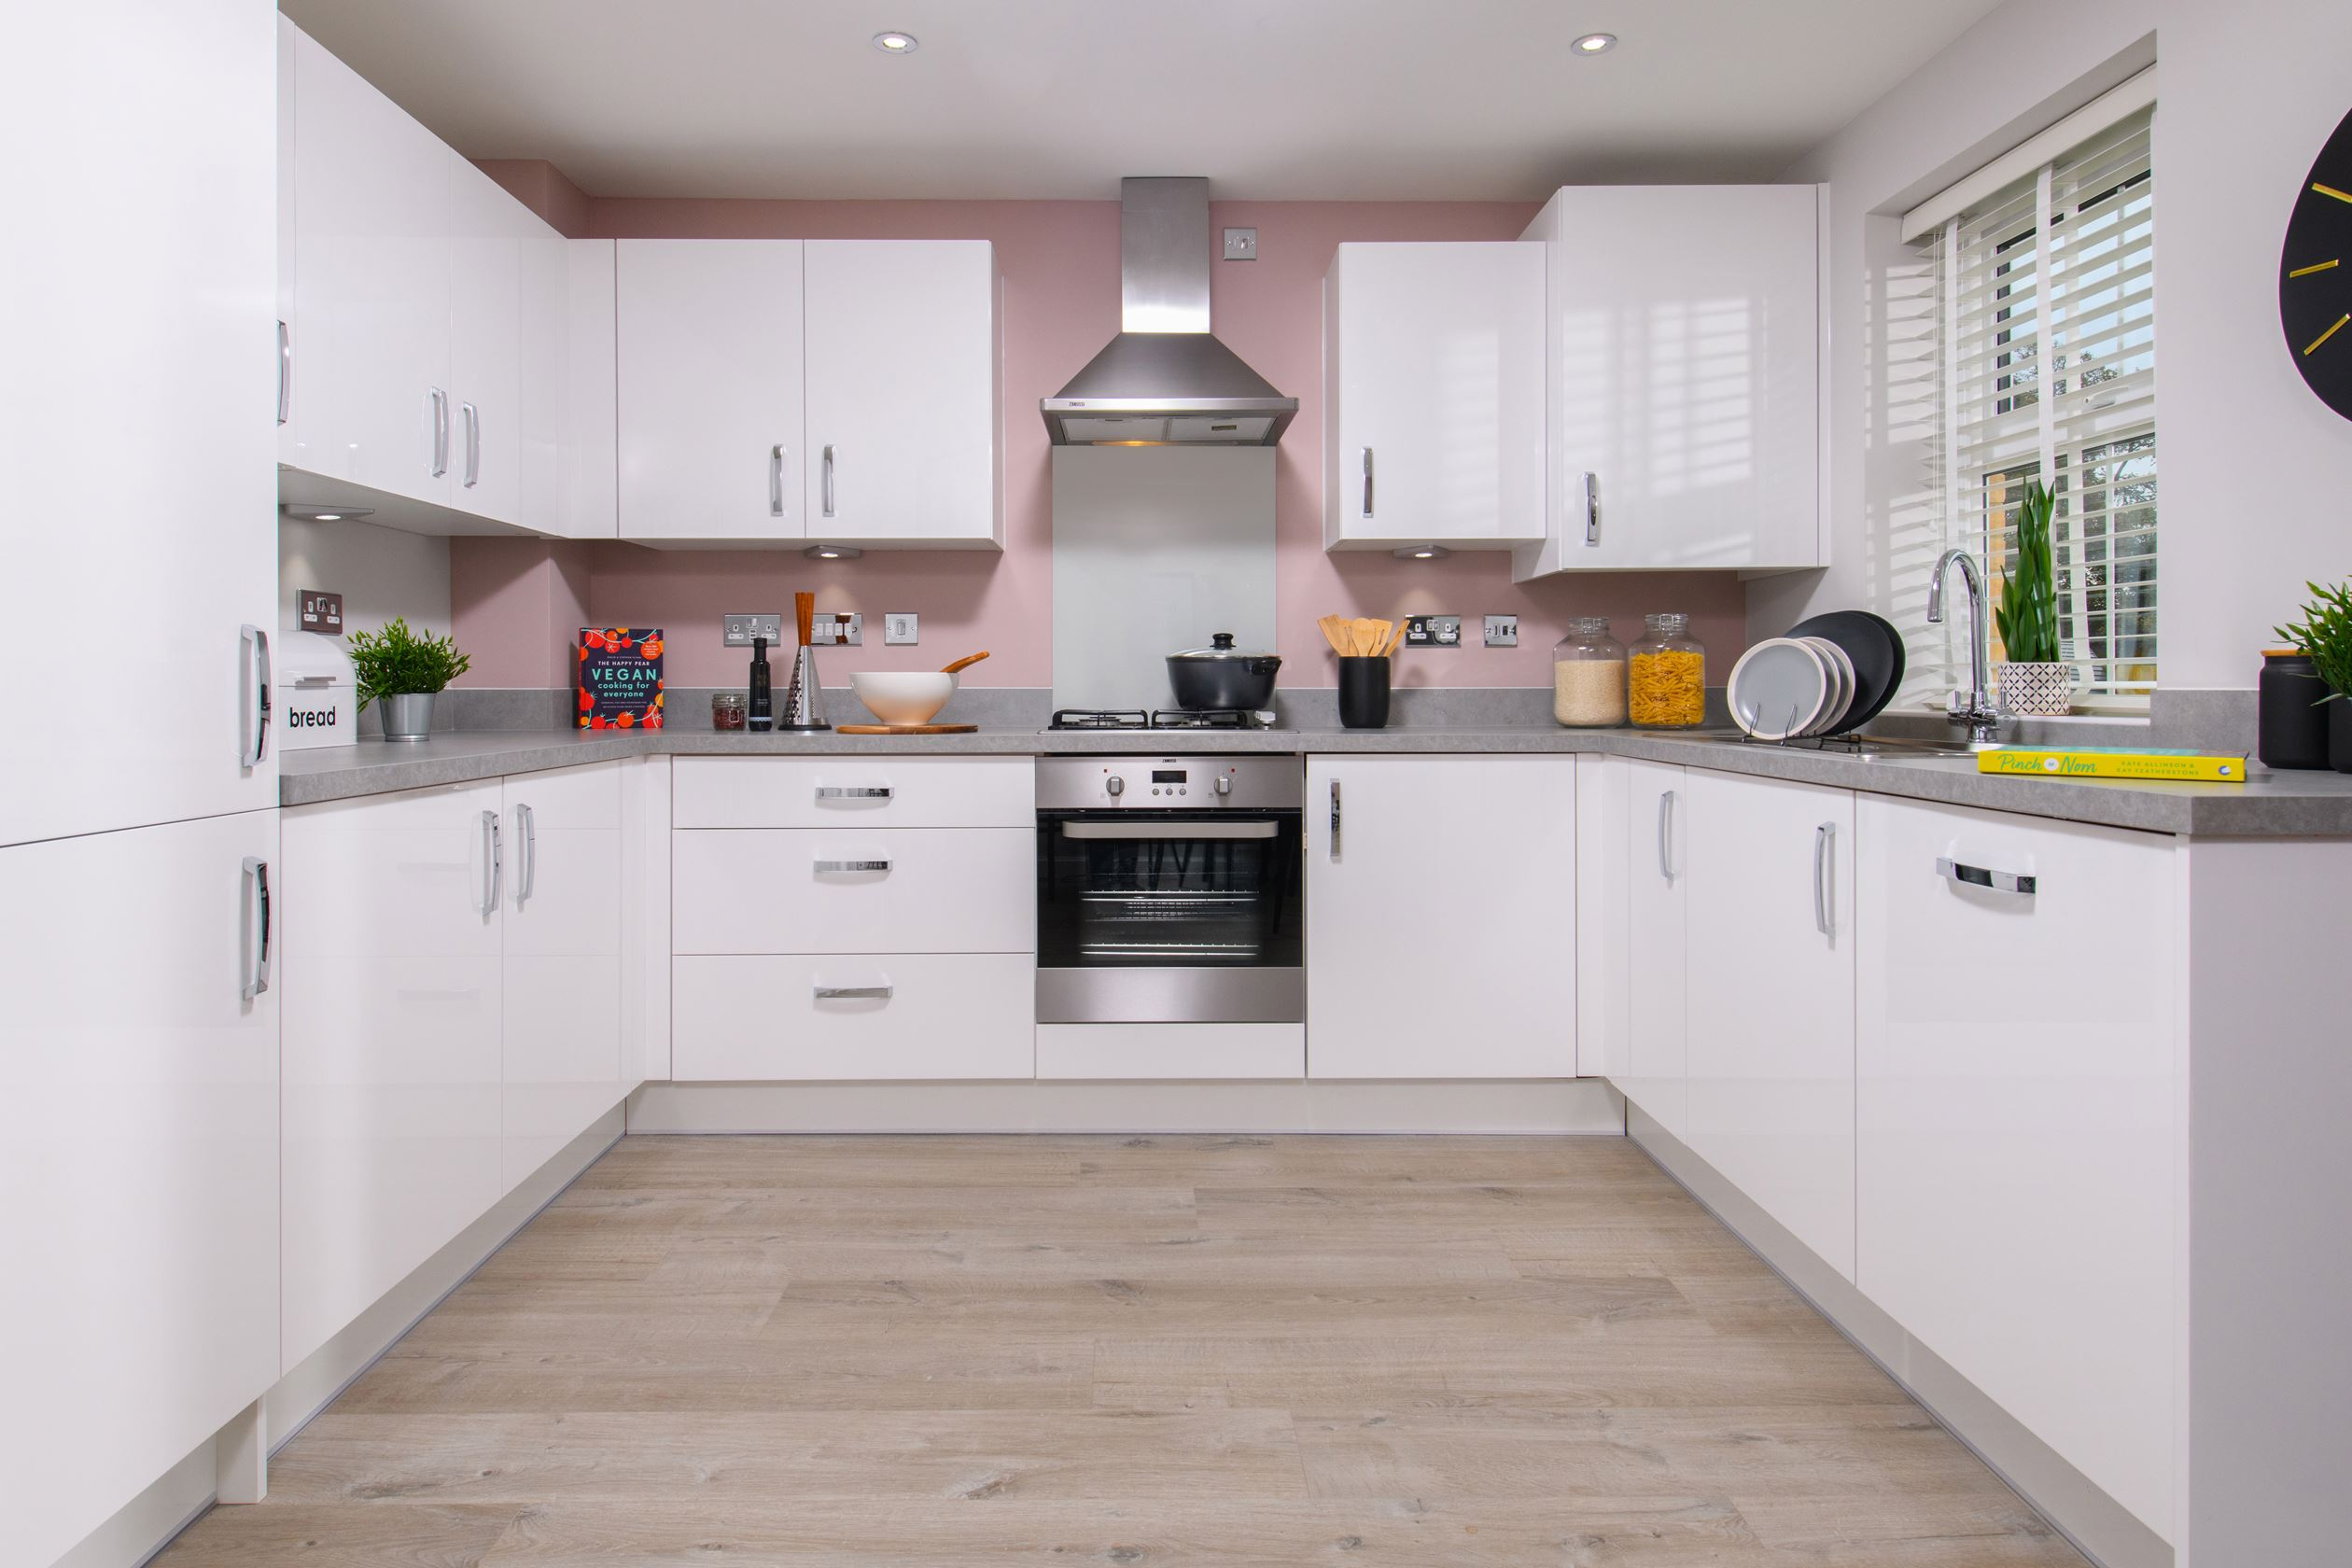 The Archford Show Home kitchen at Hesslewood Park